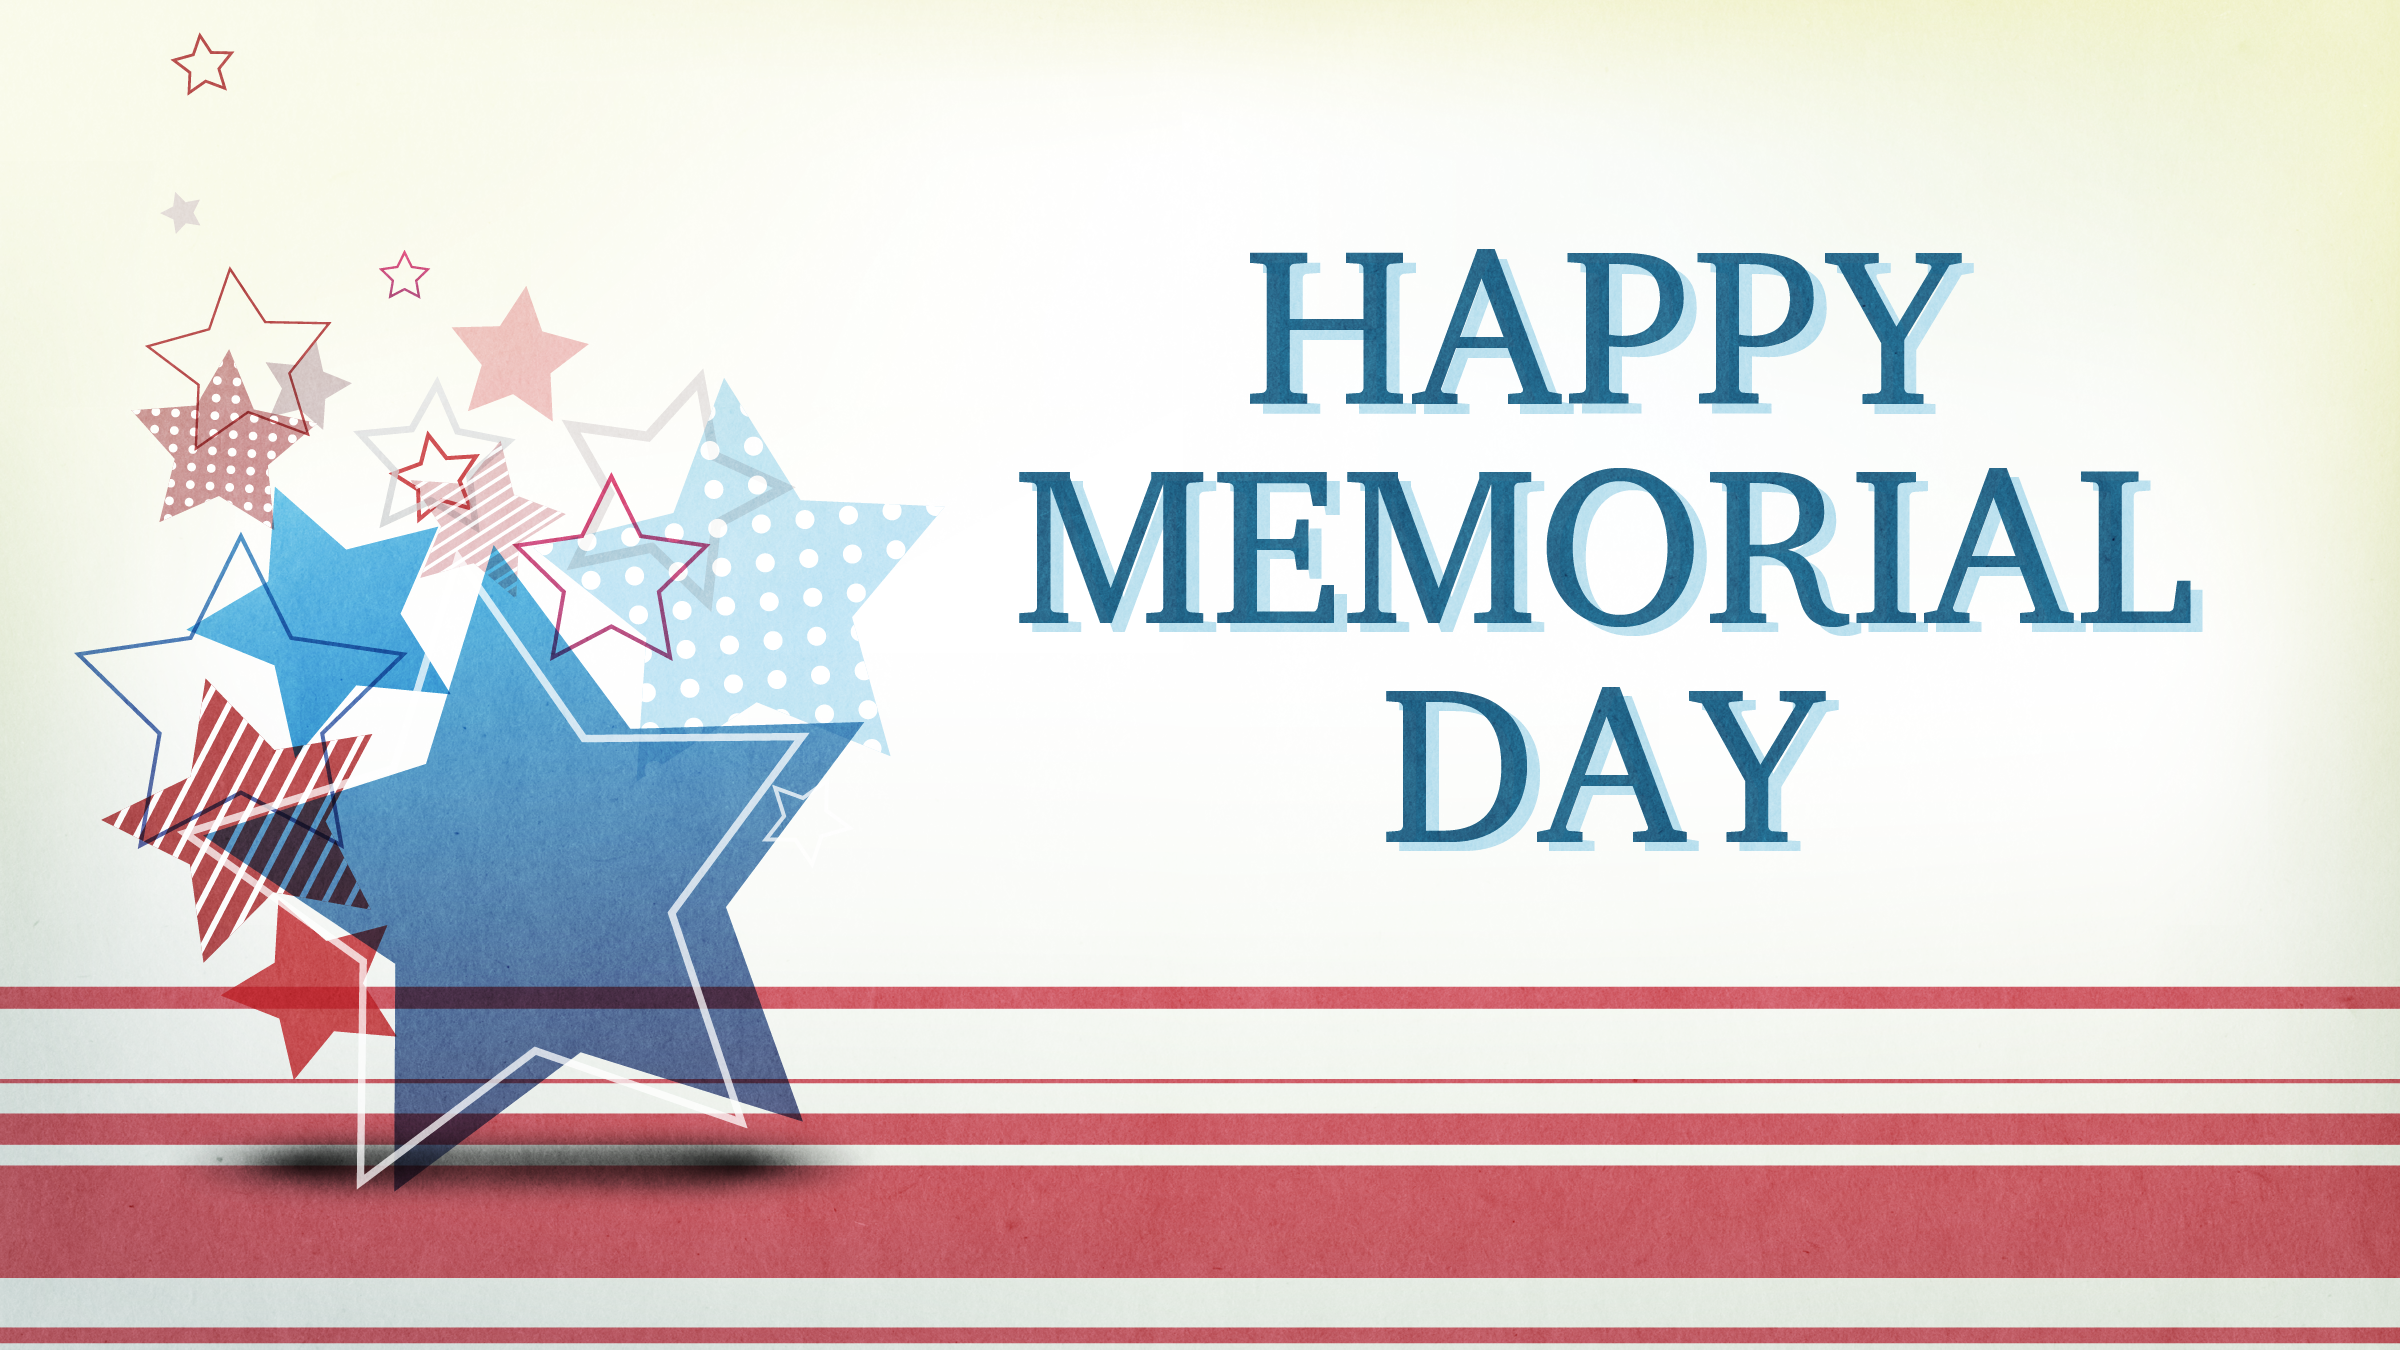 Happy Memorial Day 2015 Quotes Sayings Wishes Parade Pictures Images